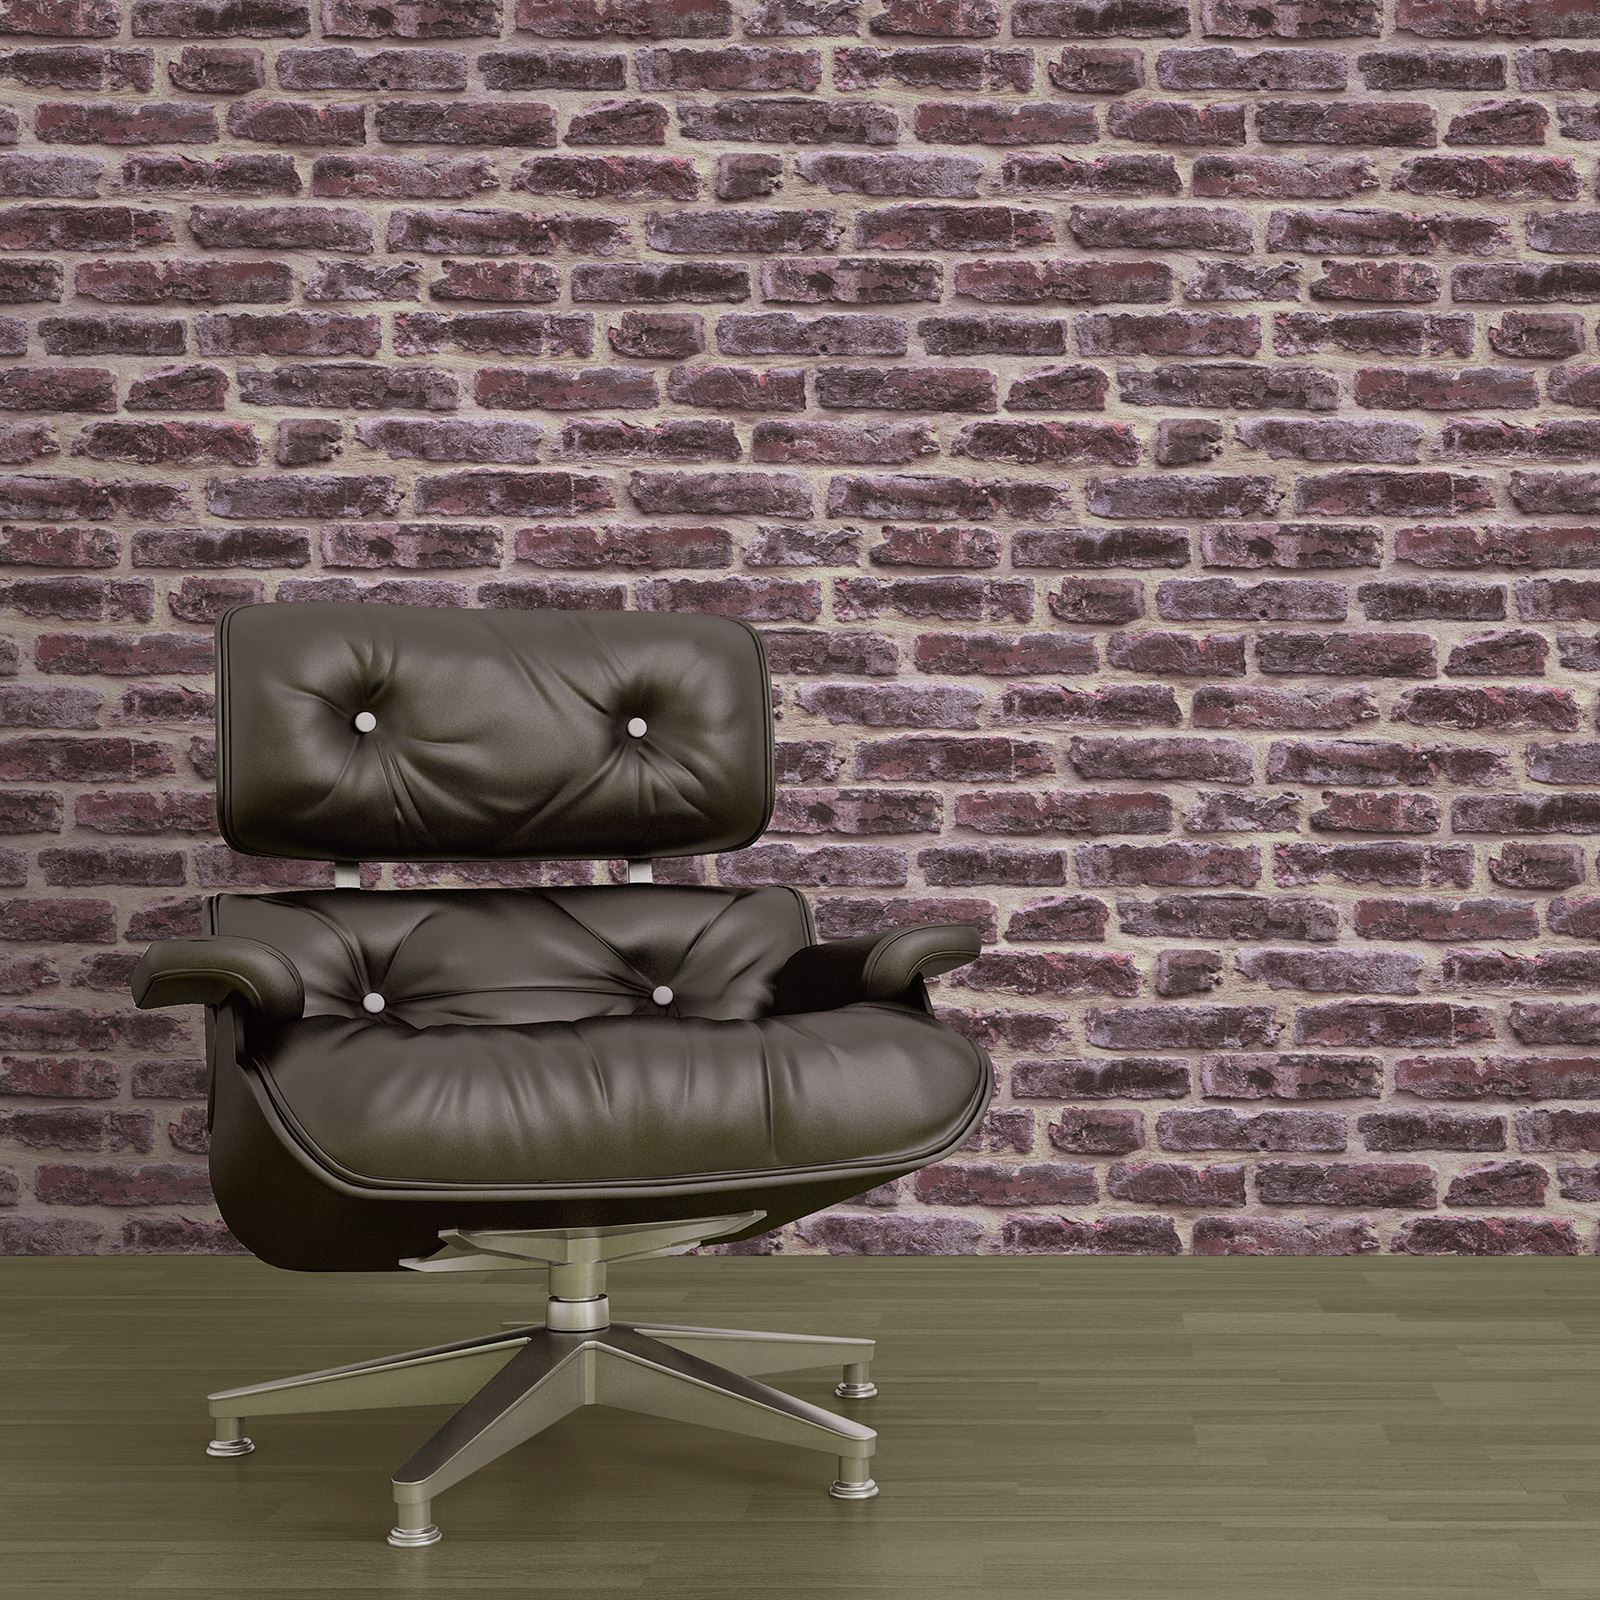 RED BRICK EFFECT REALISTIC WALLPAPER ROOM DECOR FEATURE ...